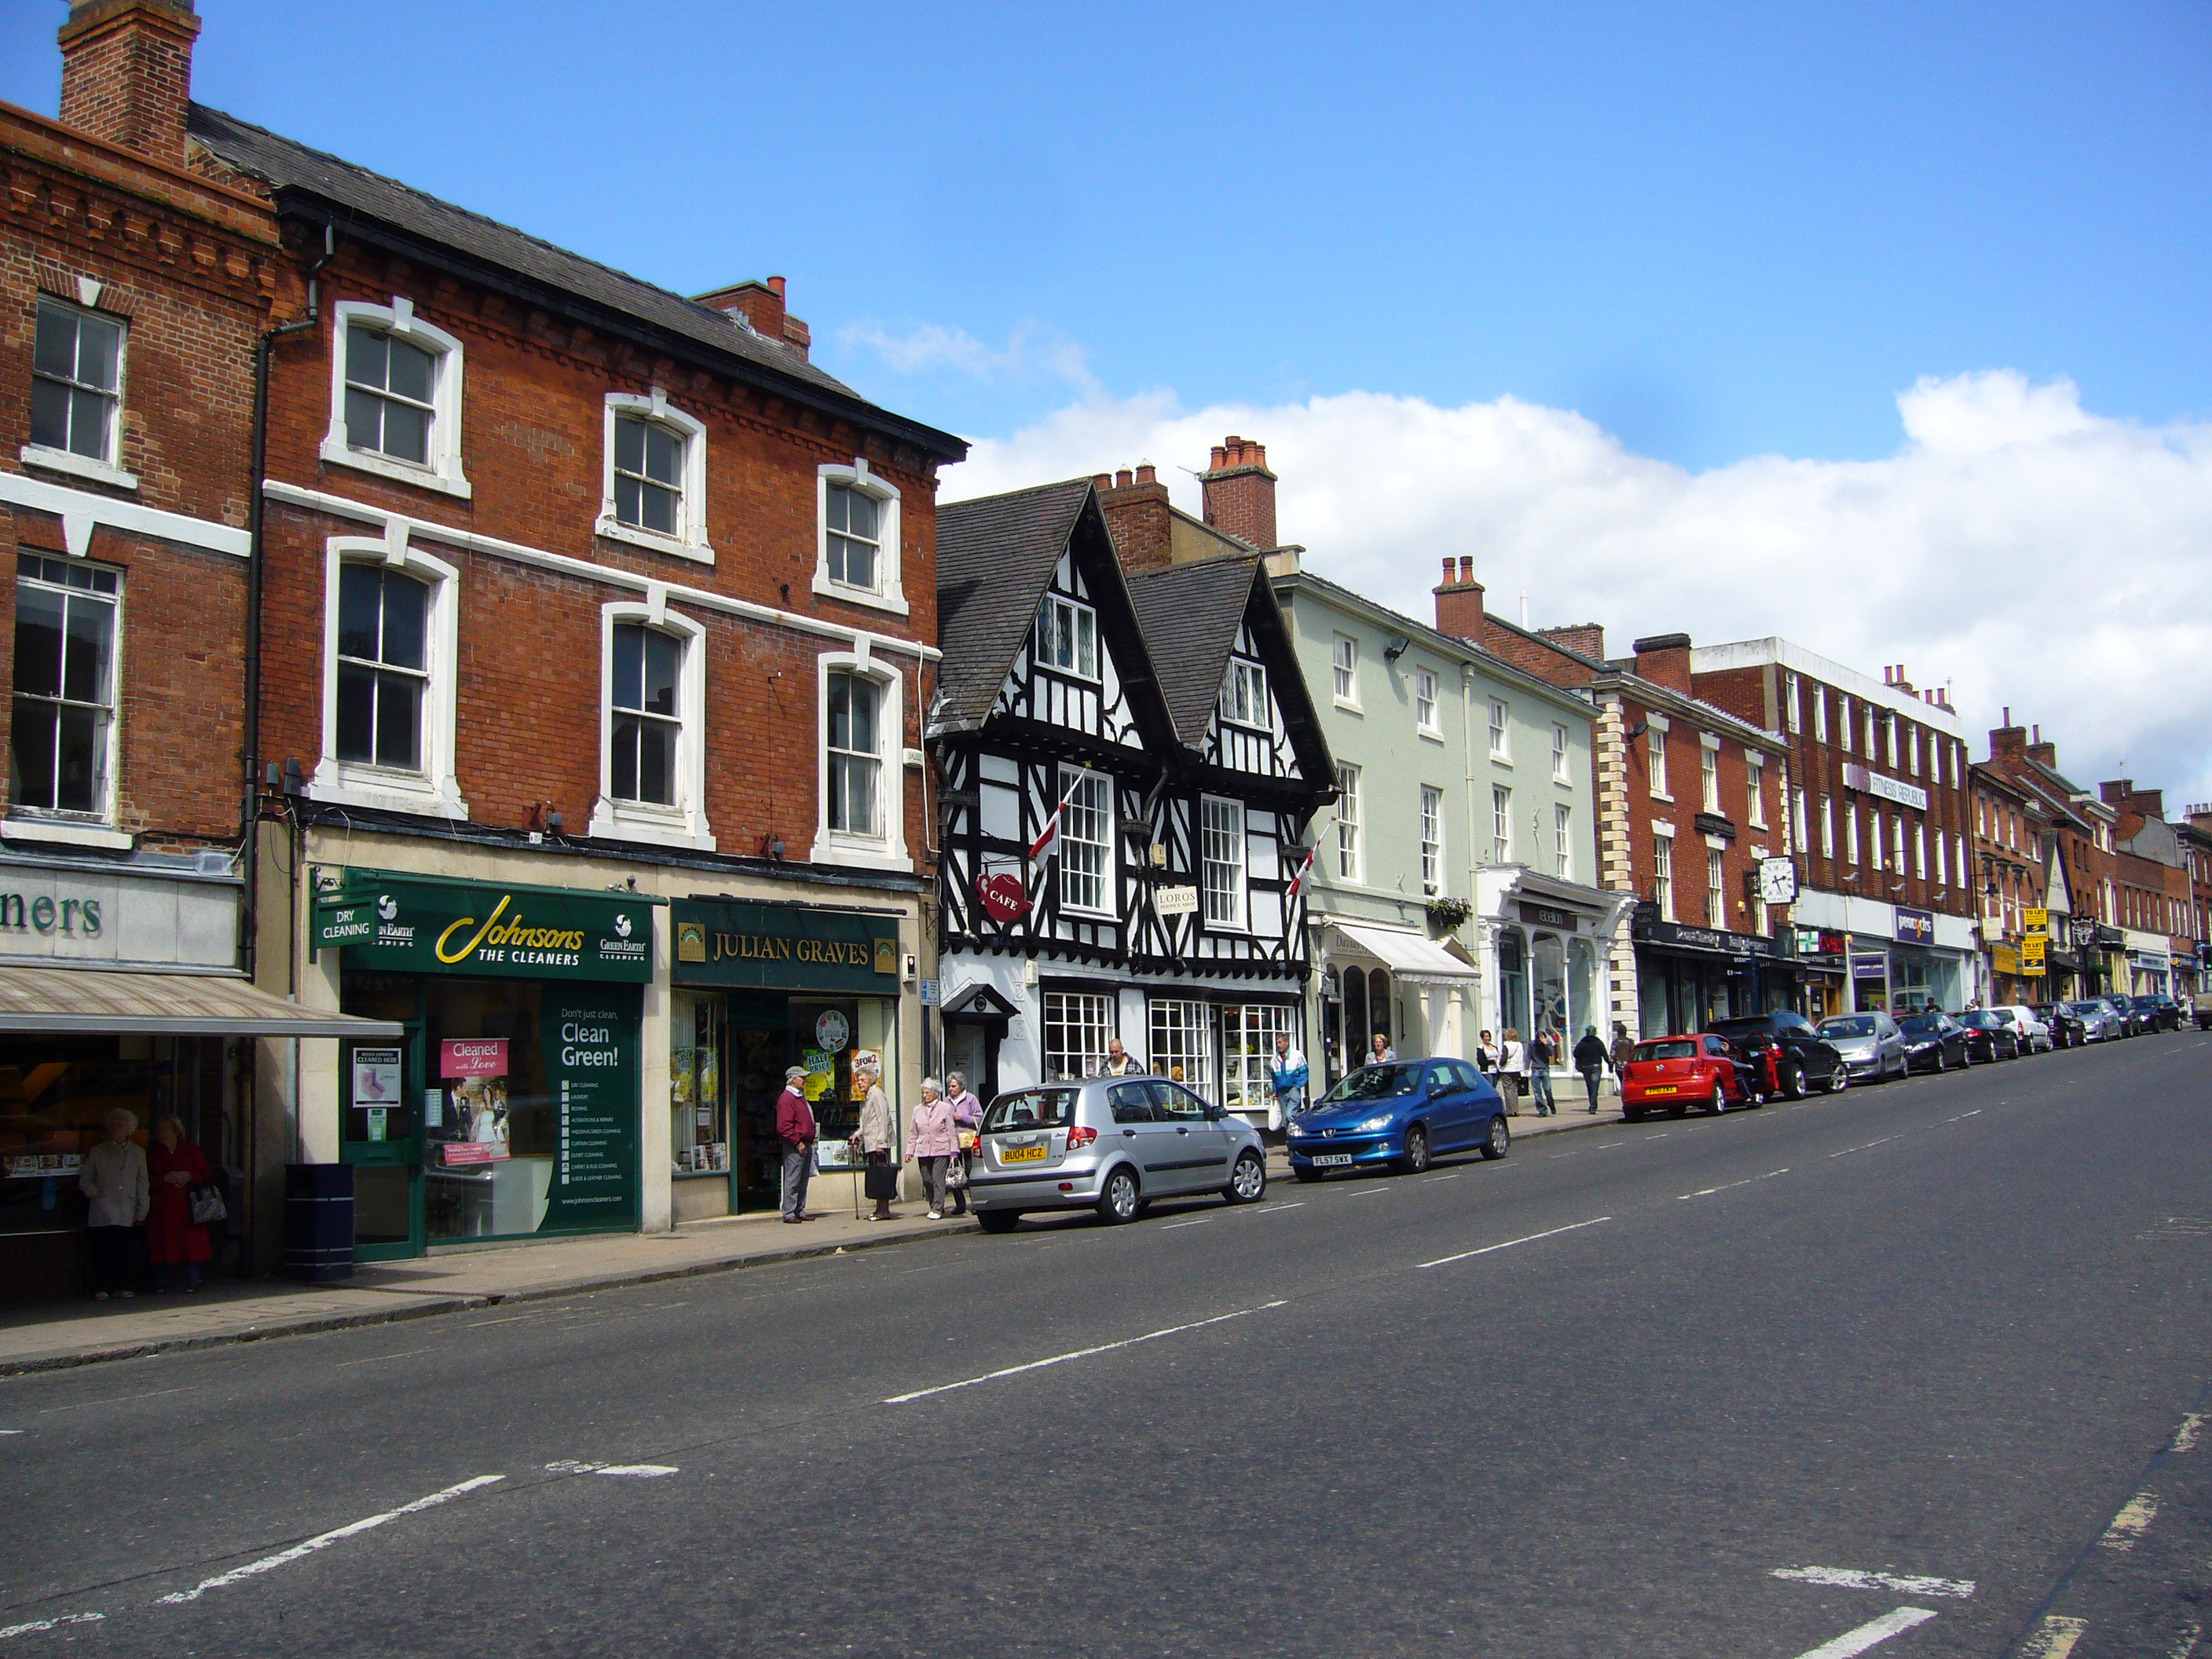 Gay Guide of Ashby de la Zouch - Leicestershire - England.